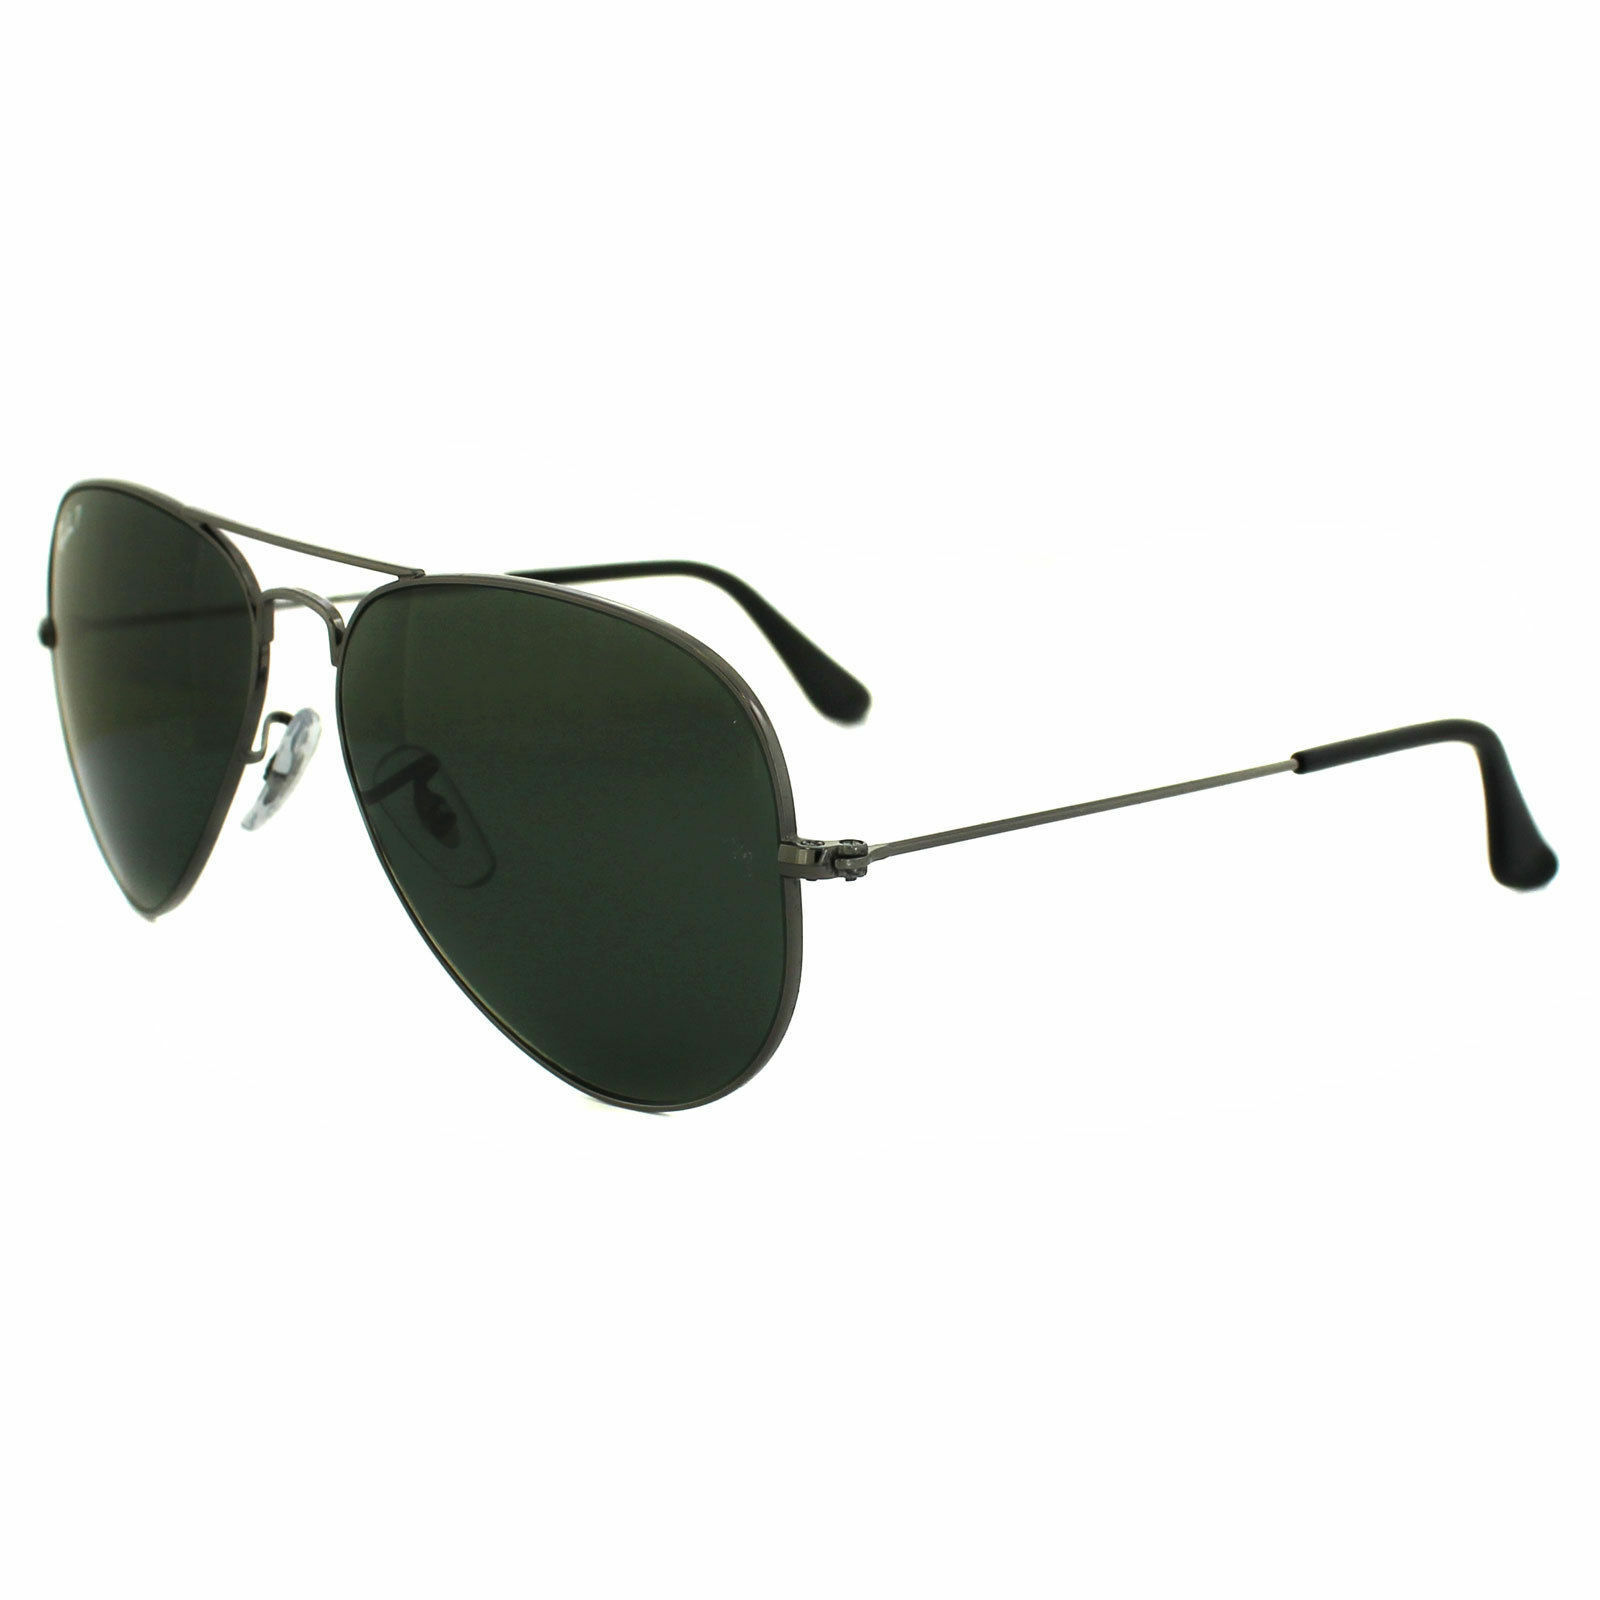 Ray-Ban RB3025 004 58mm Gunmetal Polarized Aviator Sunglasses eb7b06ea69